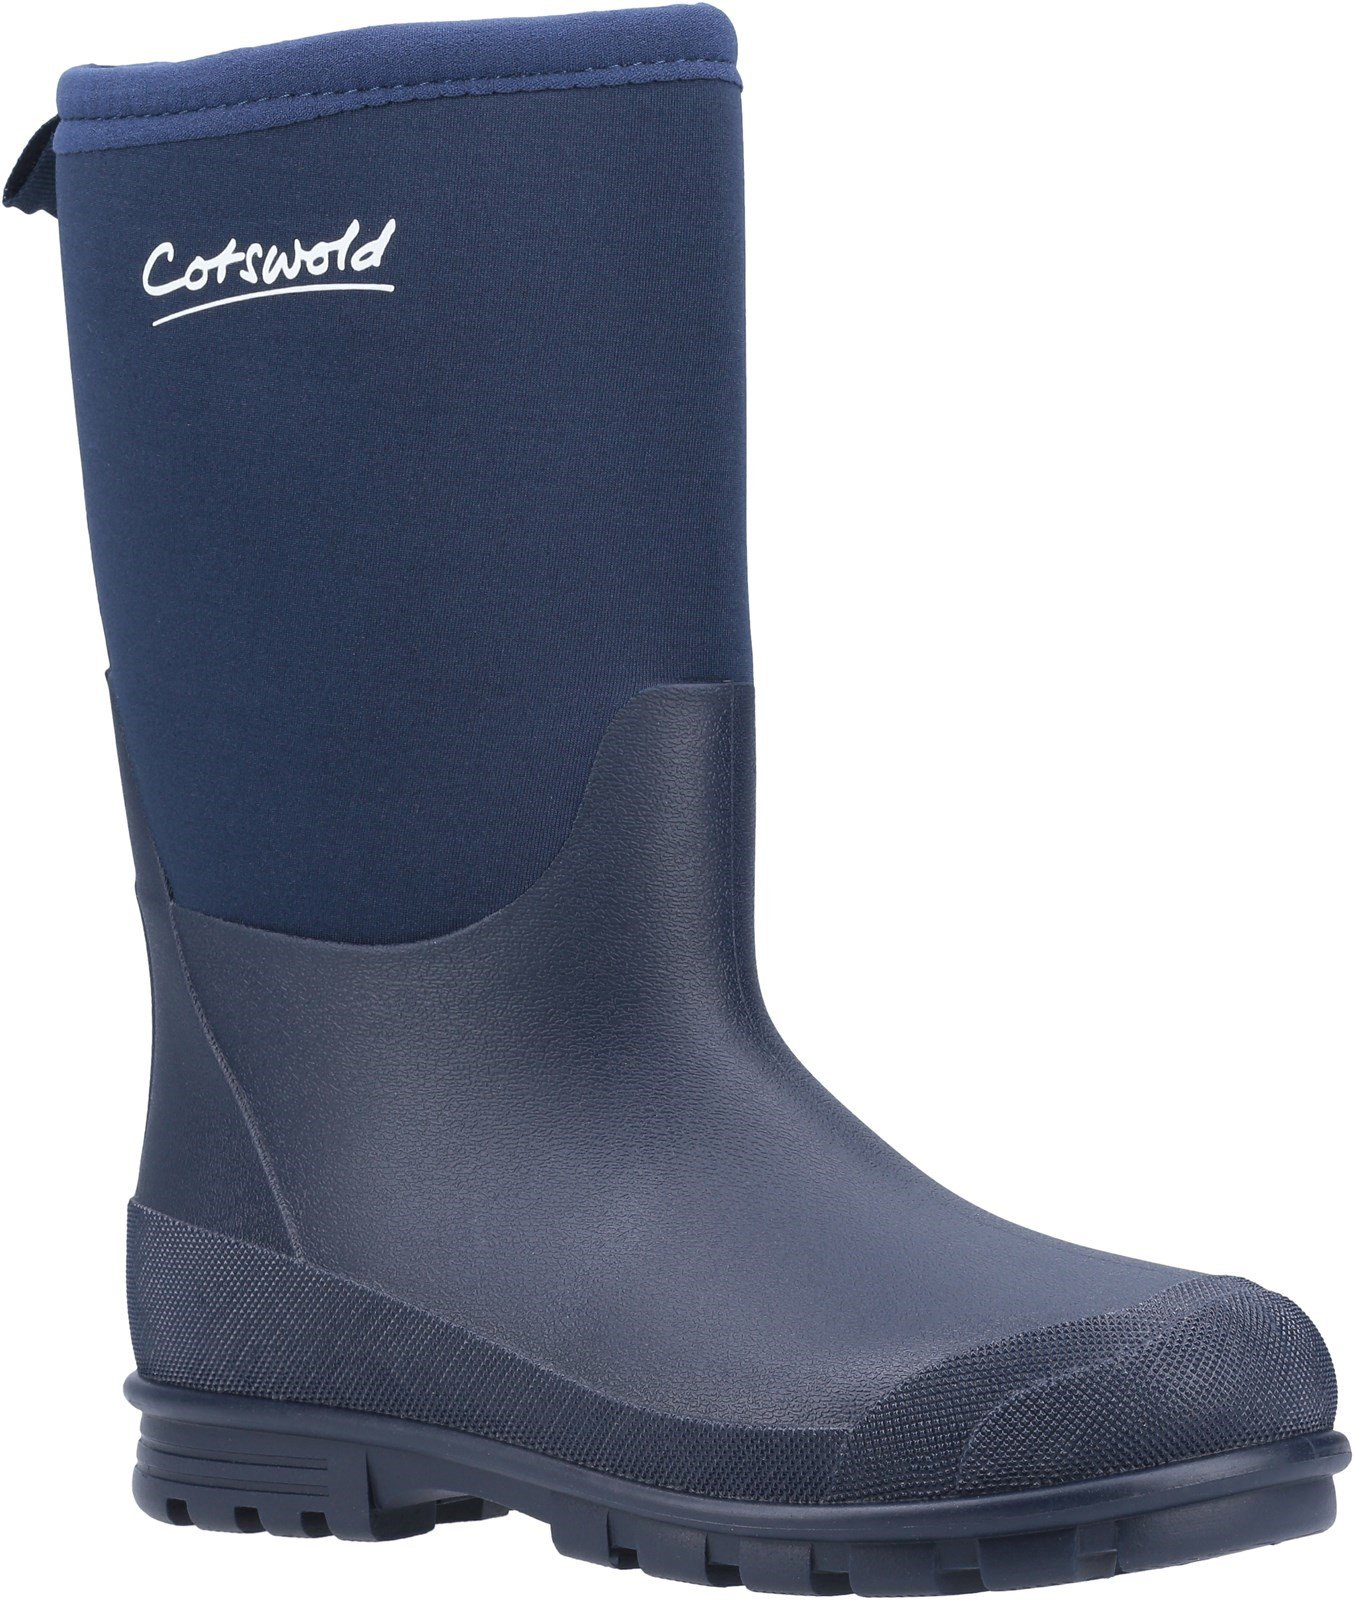 Cotswold Kids Hilly Neoprene Wellington Boot Various Colours 31492 - Navy 11